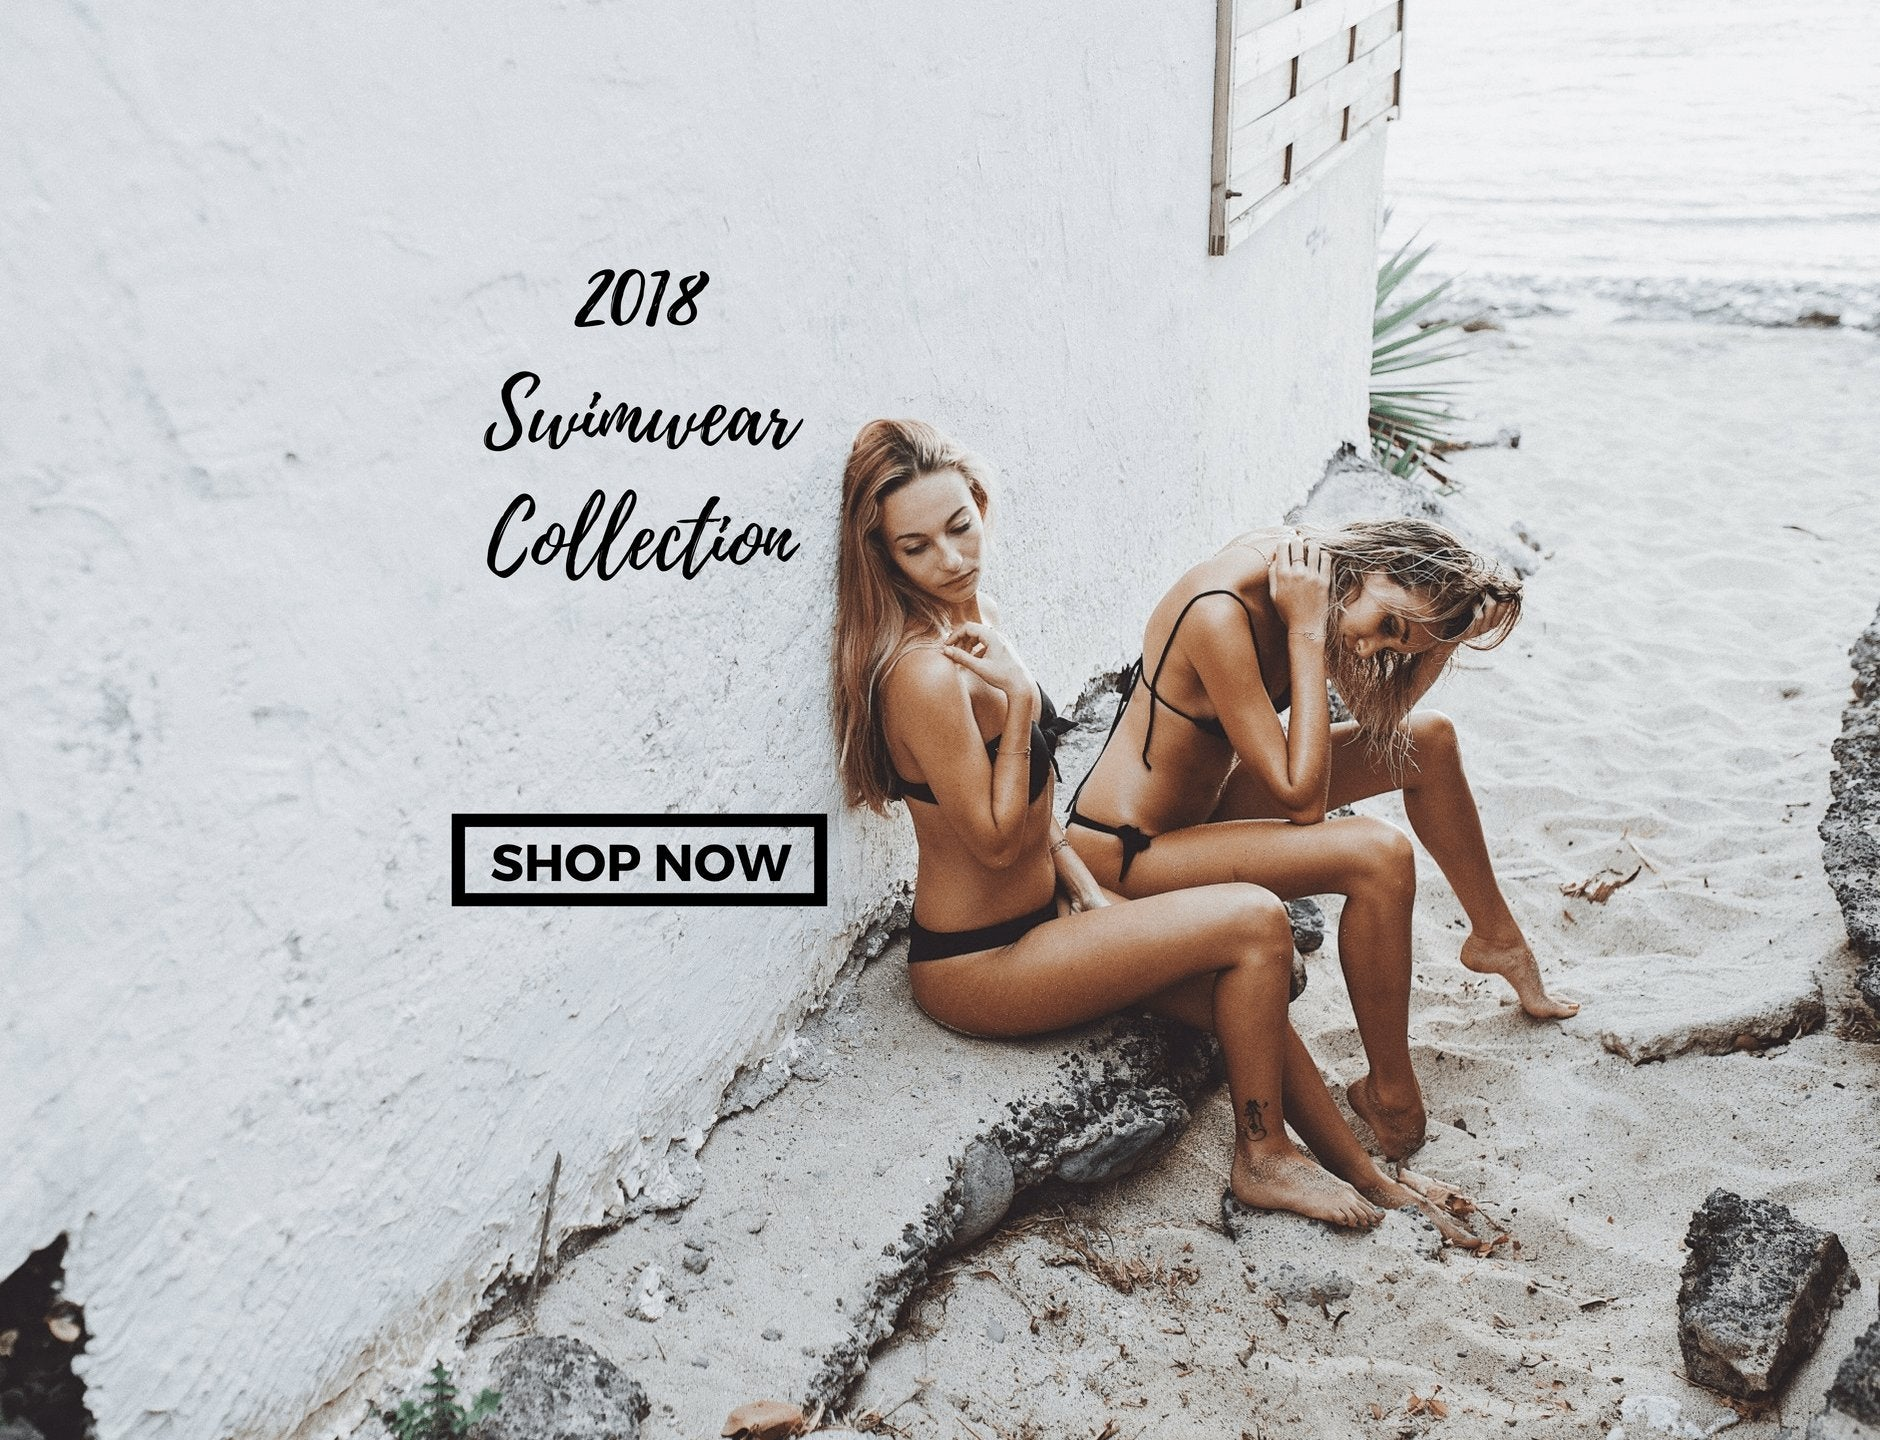 Swimwear sale | Bikini Sale | One Piece Swimsuit sale | Ocean Land